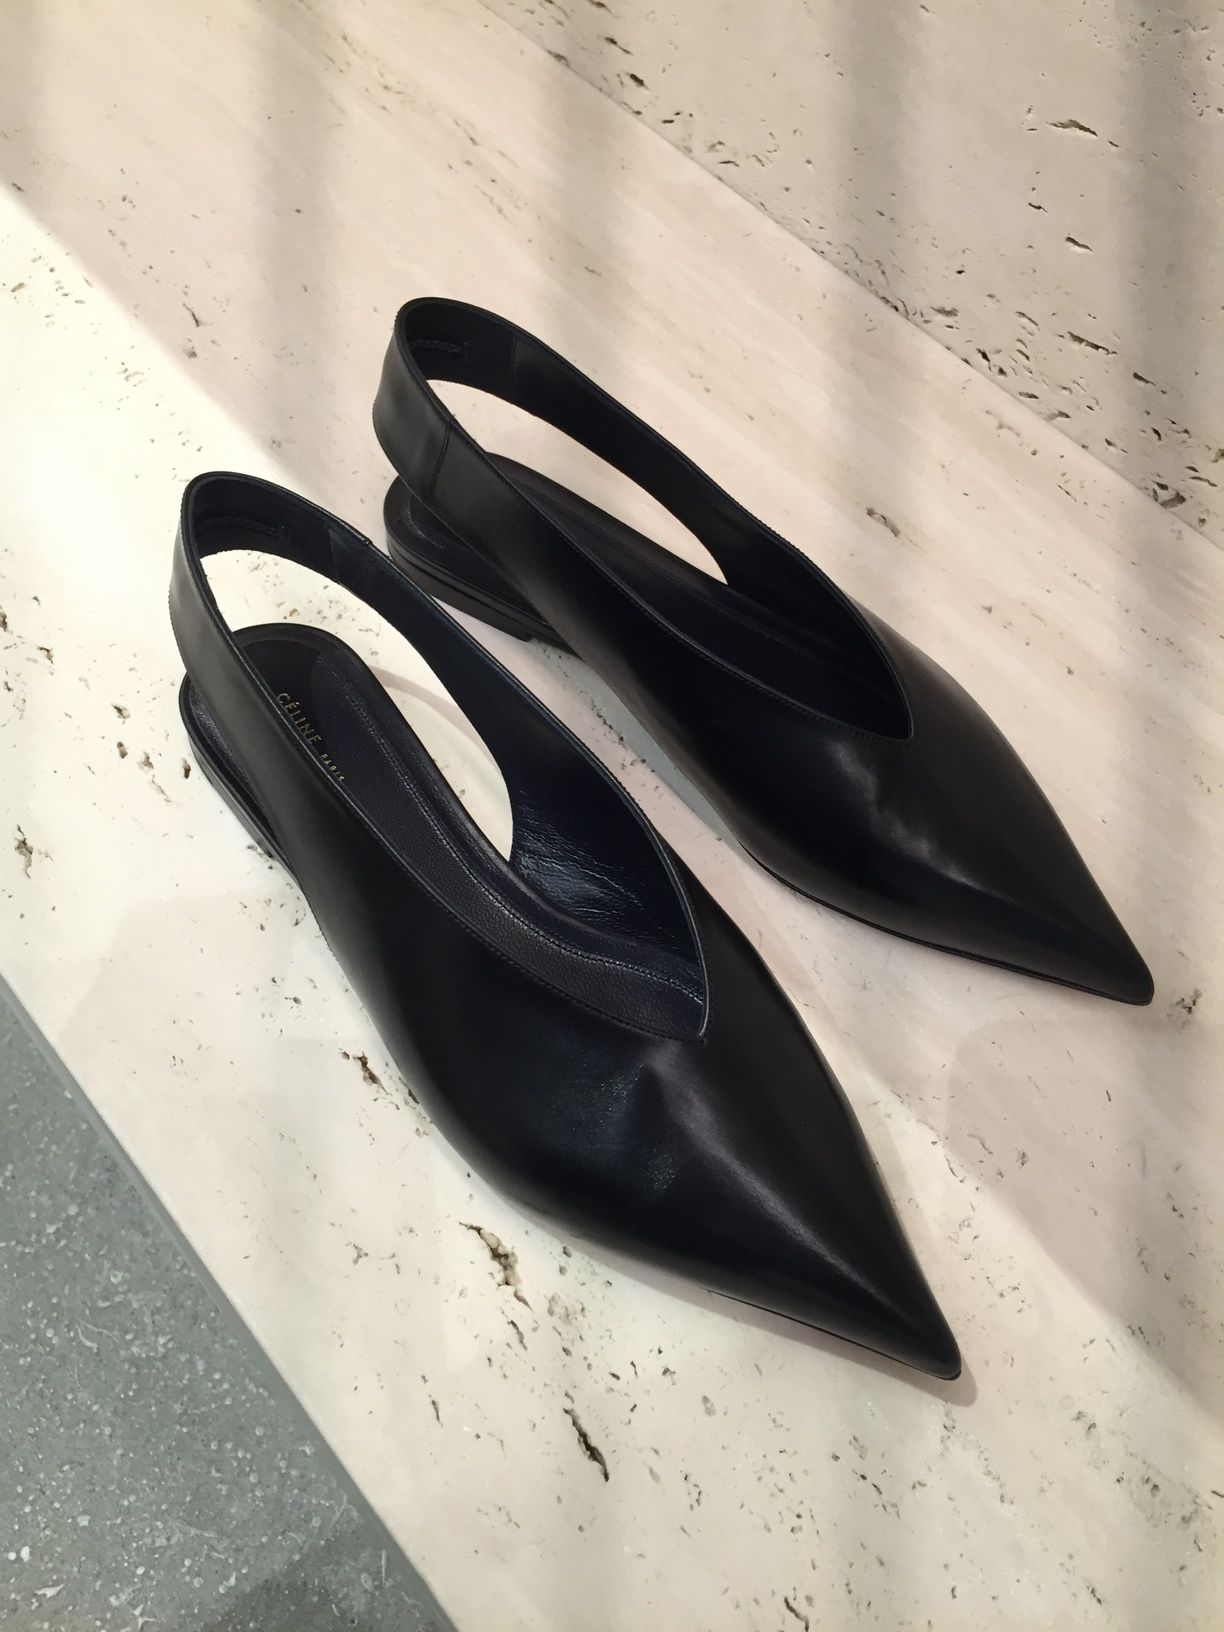 56ae1a0763f pointed toe sling back flats from Celine